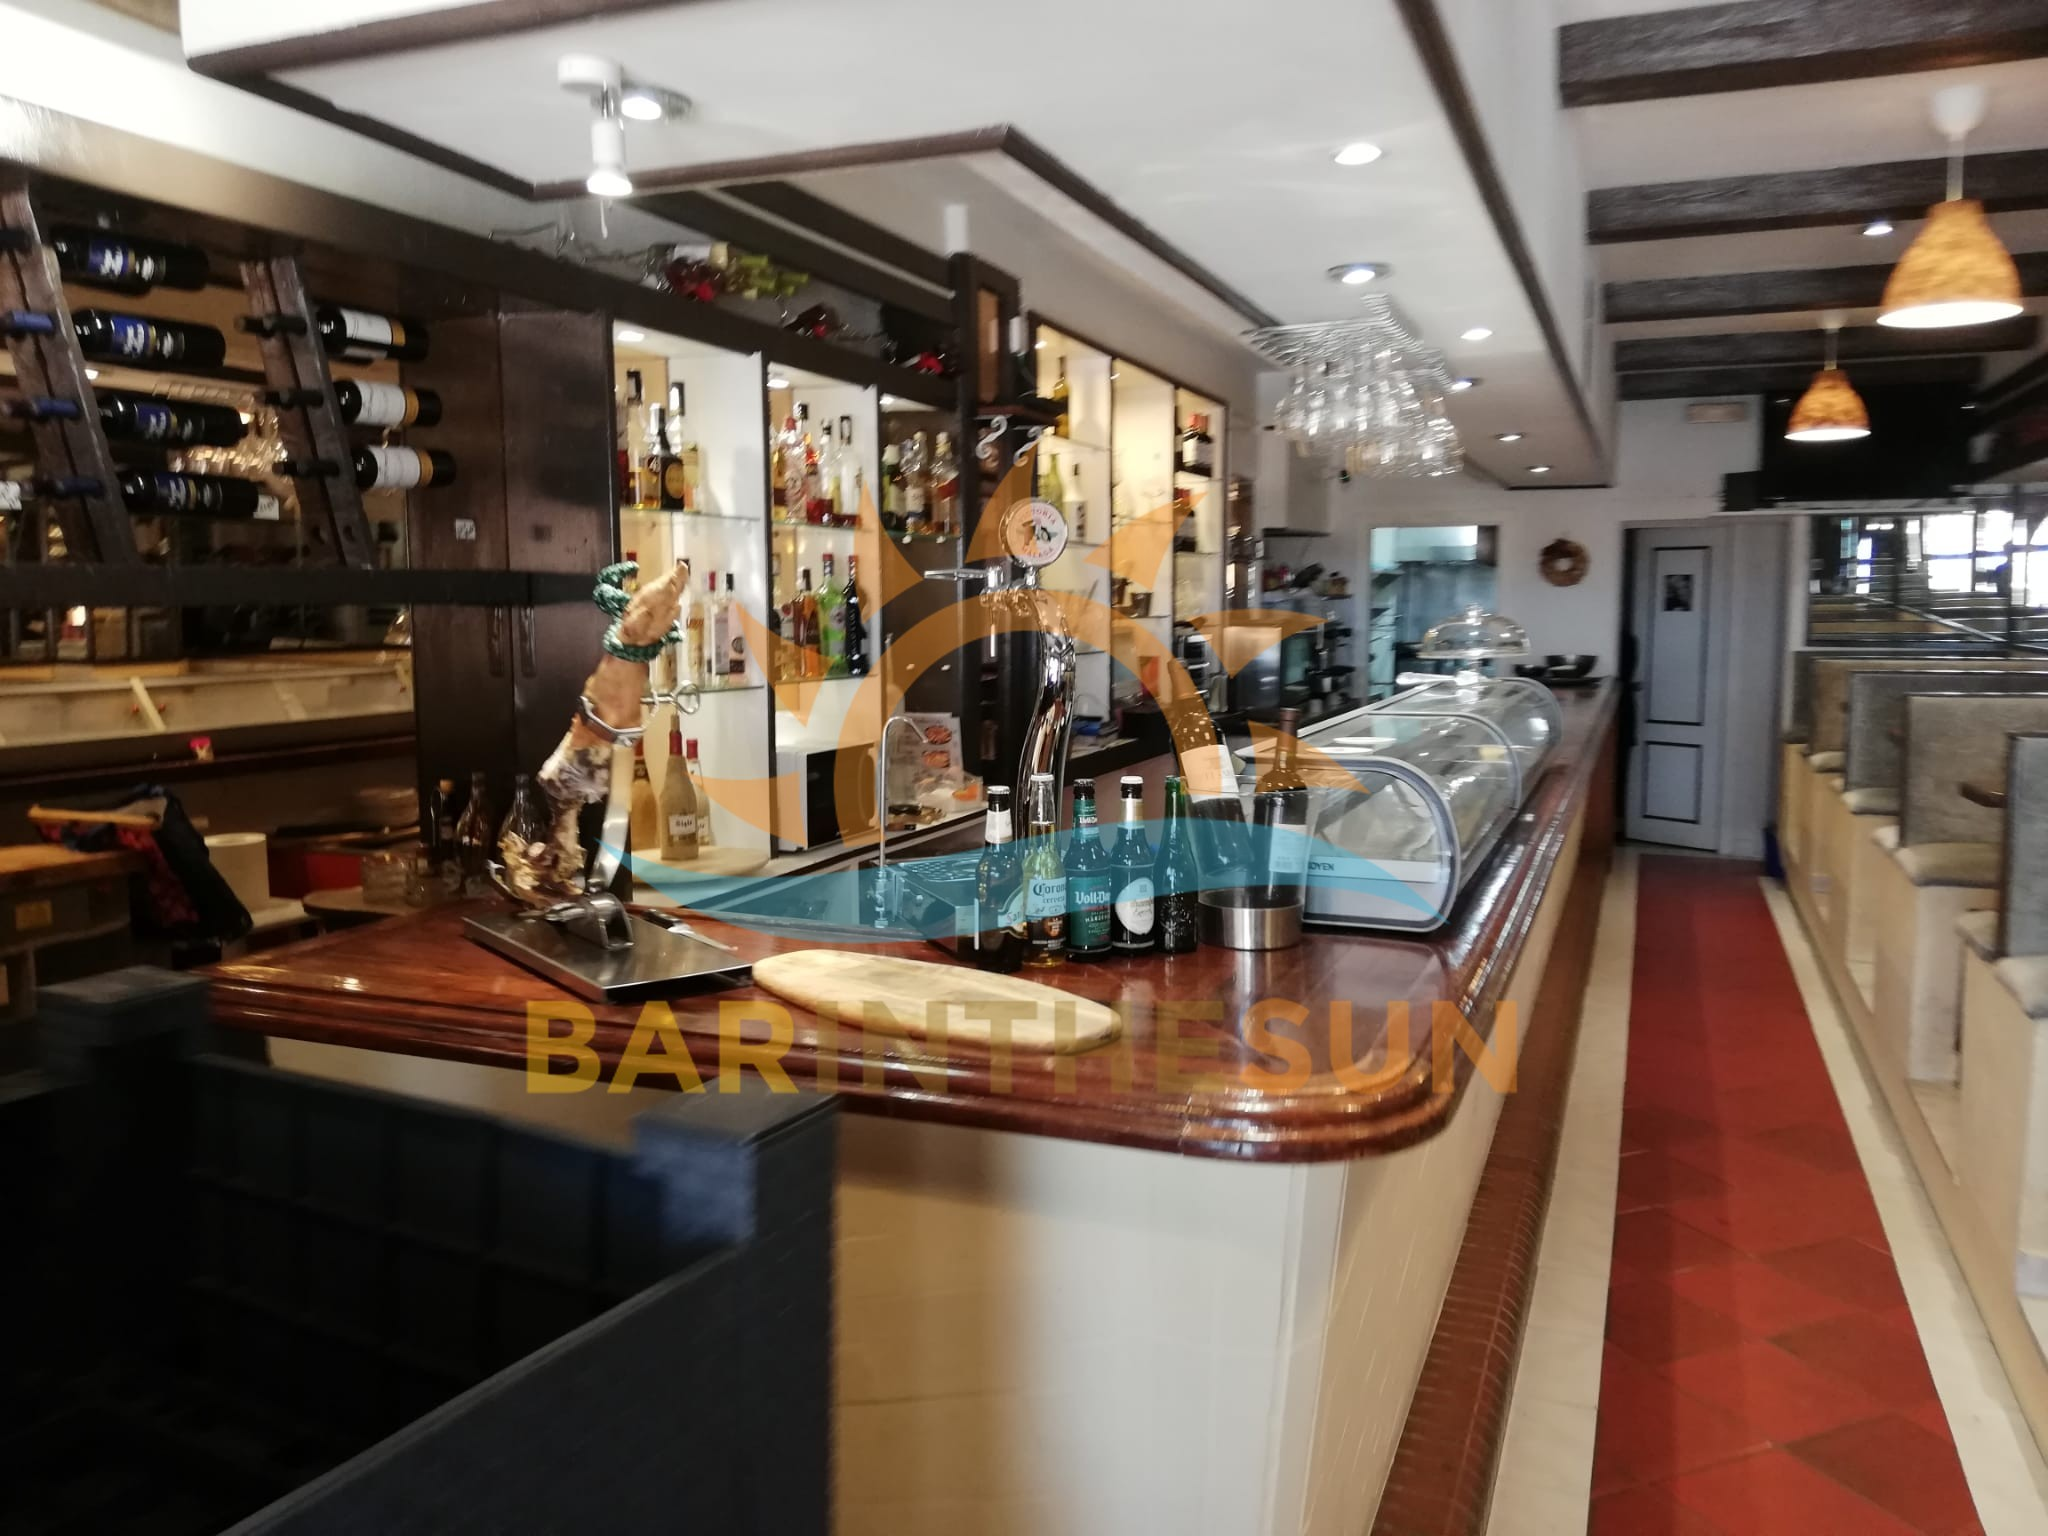 Fuengirola Seafront Cafe Bars For Sale, Seafront Bars For Sale in Spain